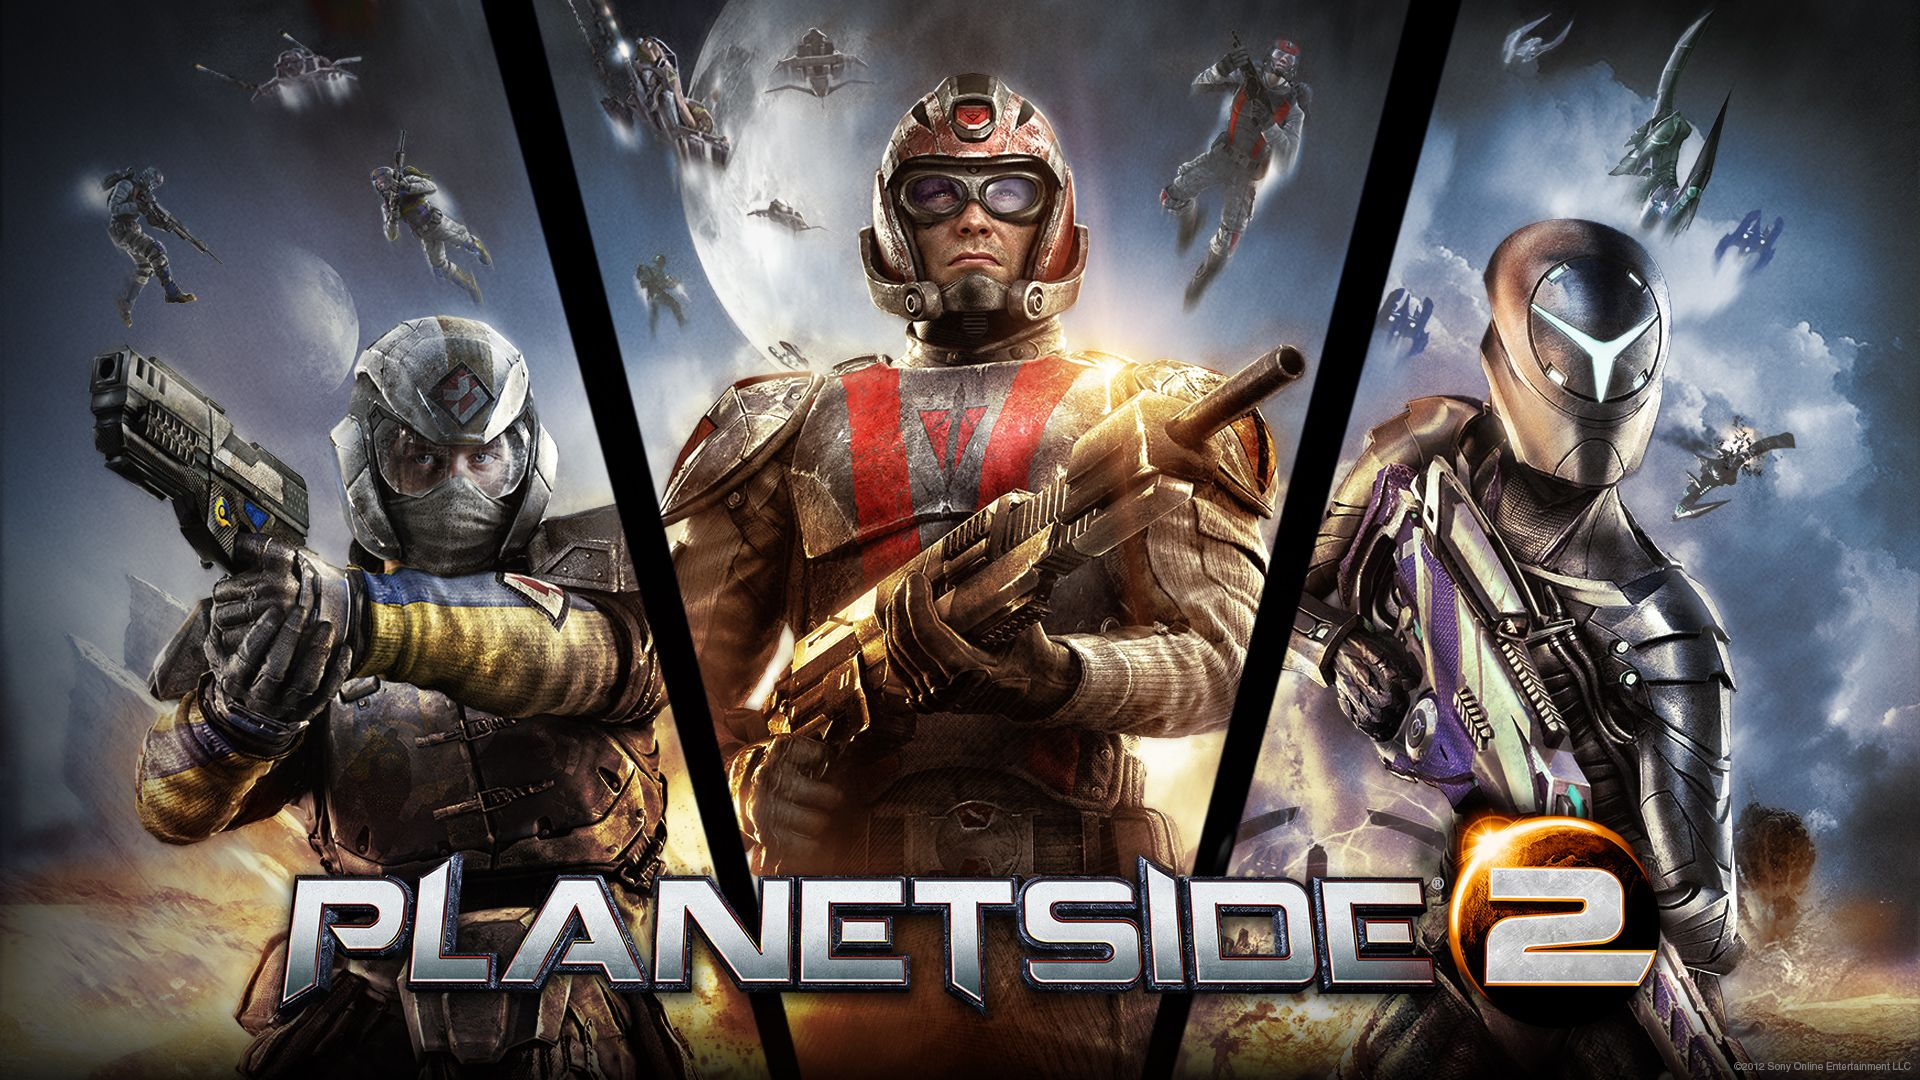 Planetside Wallpapers Wallpaper Picture Images Games 1920x1080